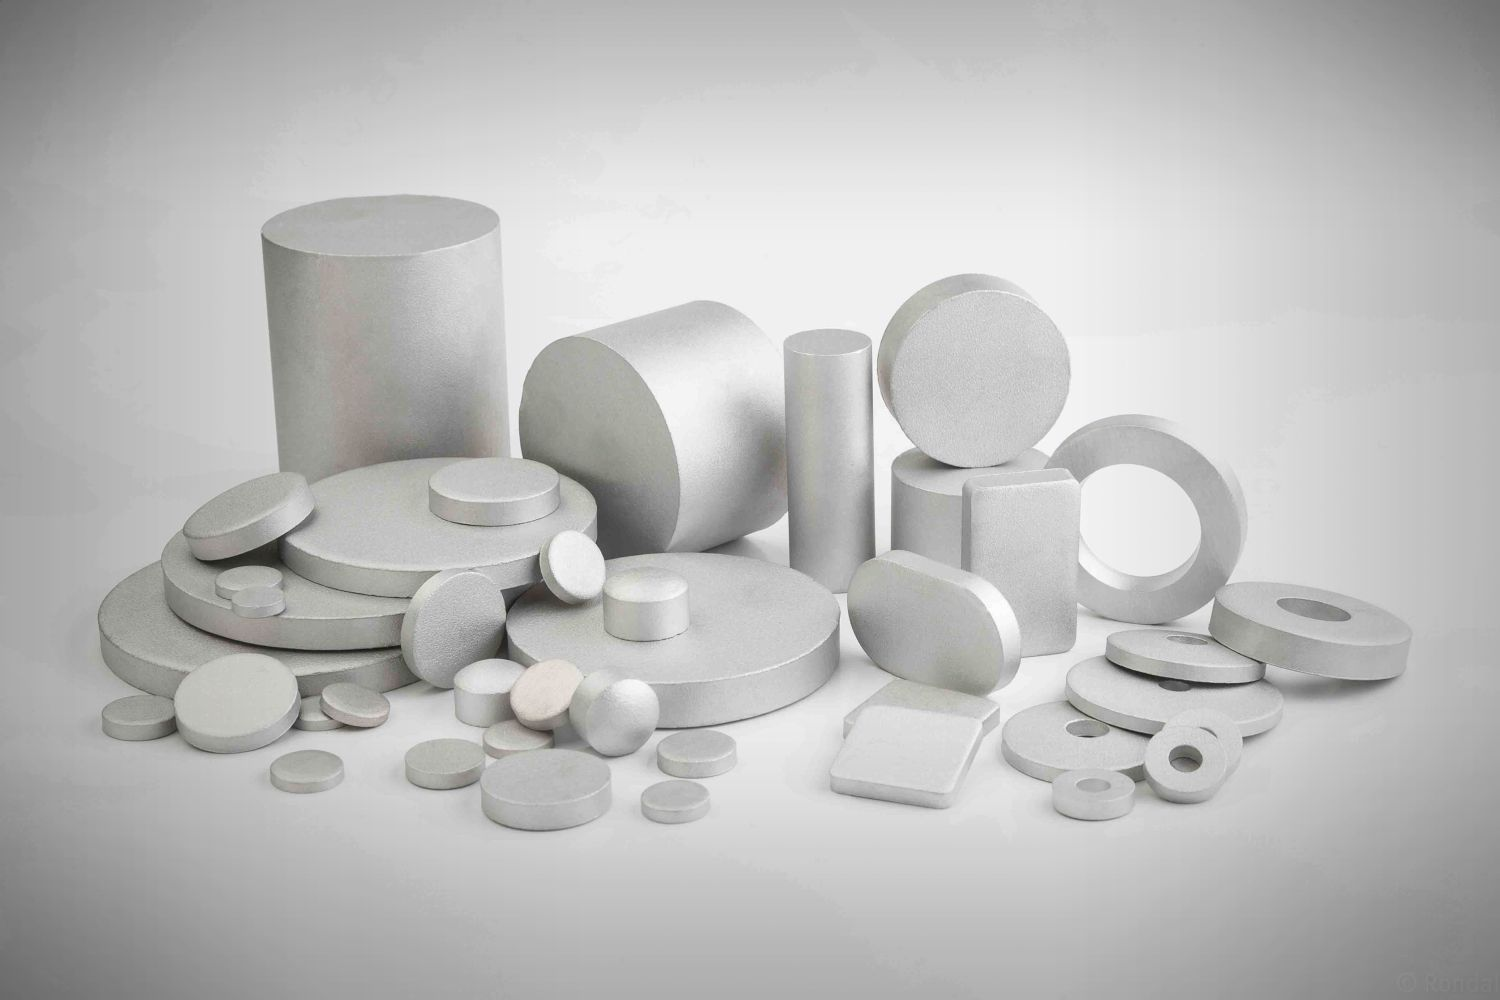 High quality punched and sawn slugs from pure aluminium and aluminium alloys.